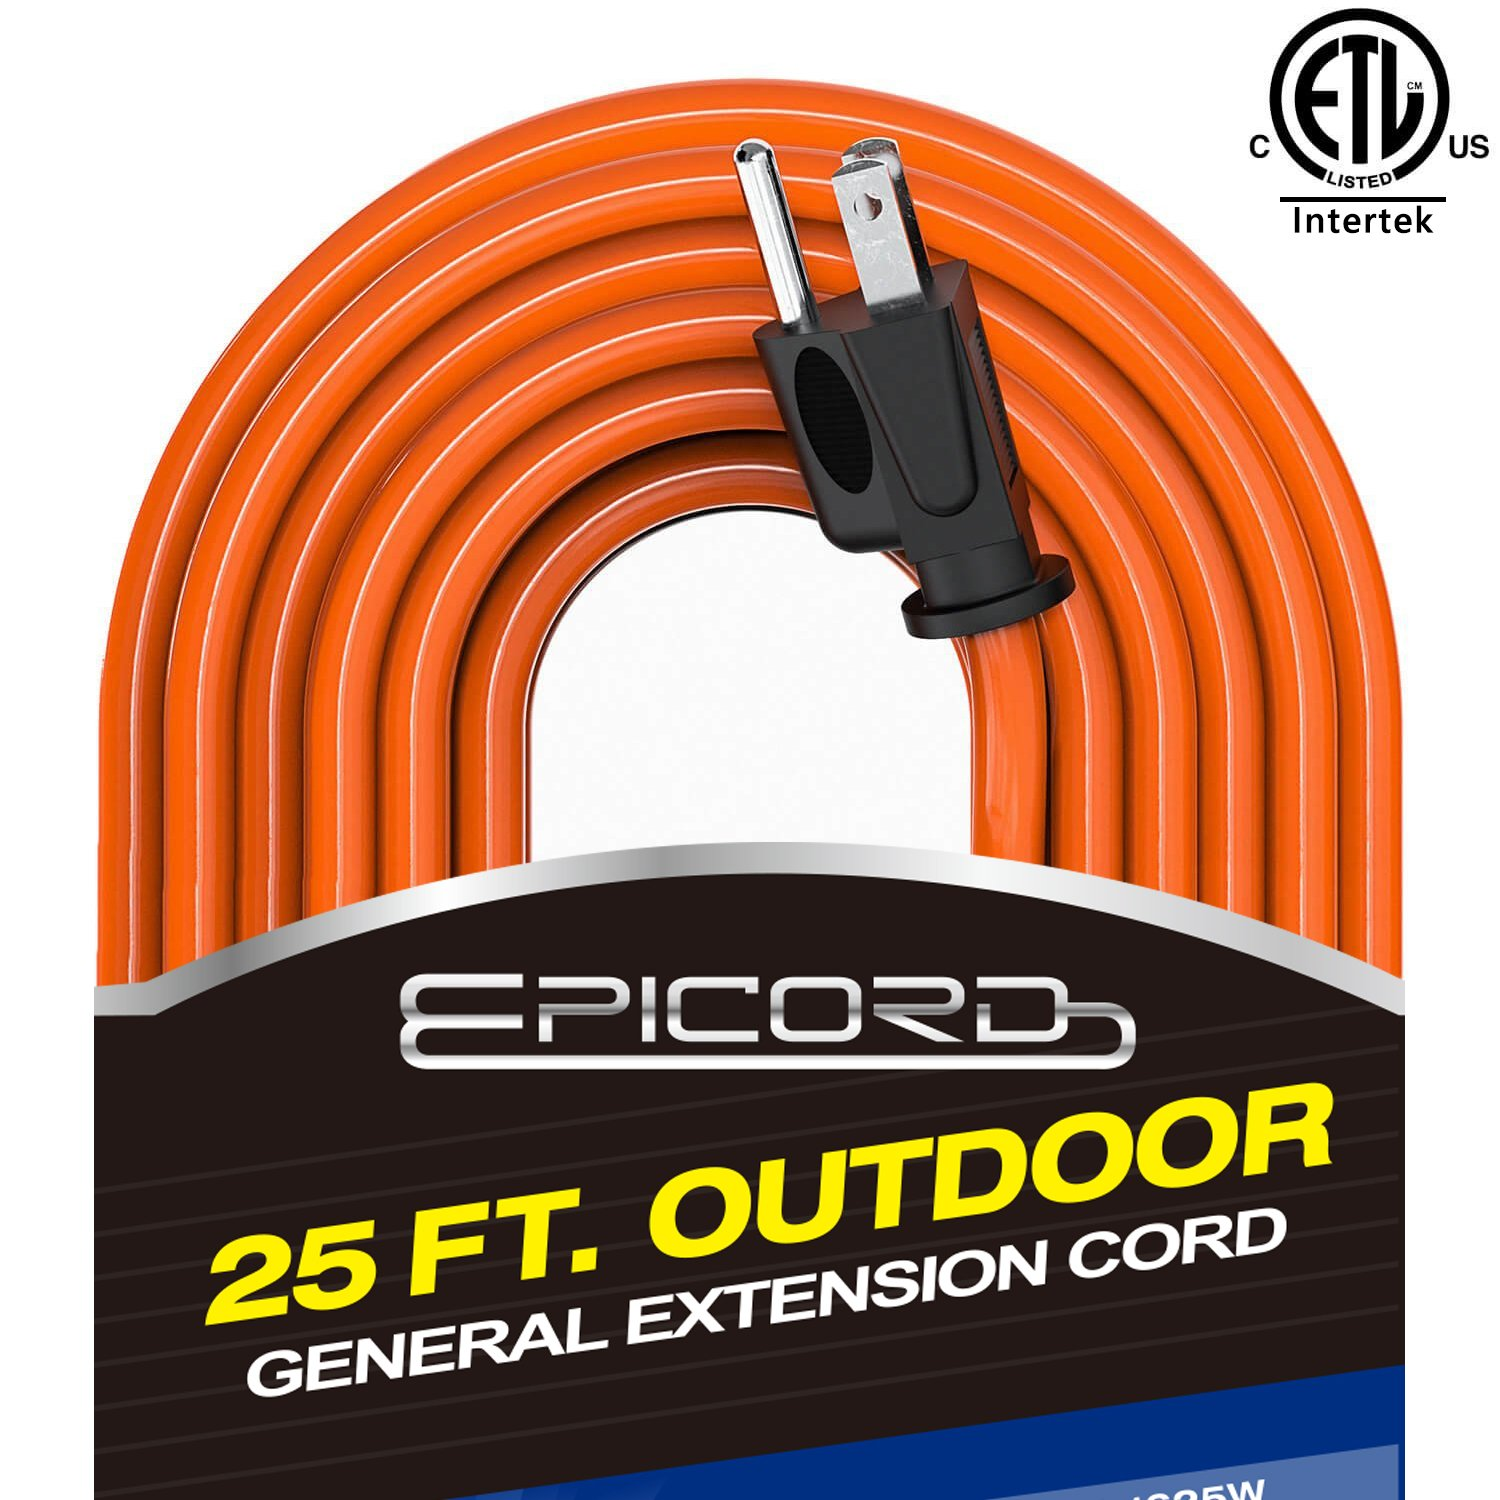 Epicord 16/3 Outdoor Extension Cord 3 Conductor Heavy Duty for Indoor and Outdoor (10 Feet) Black